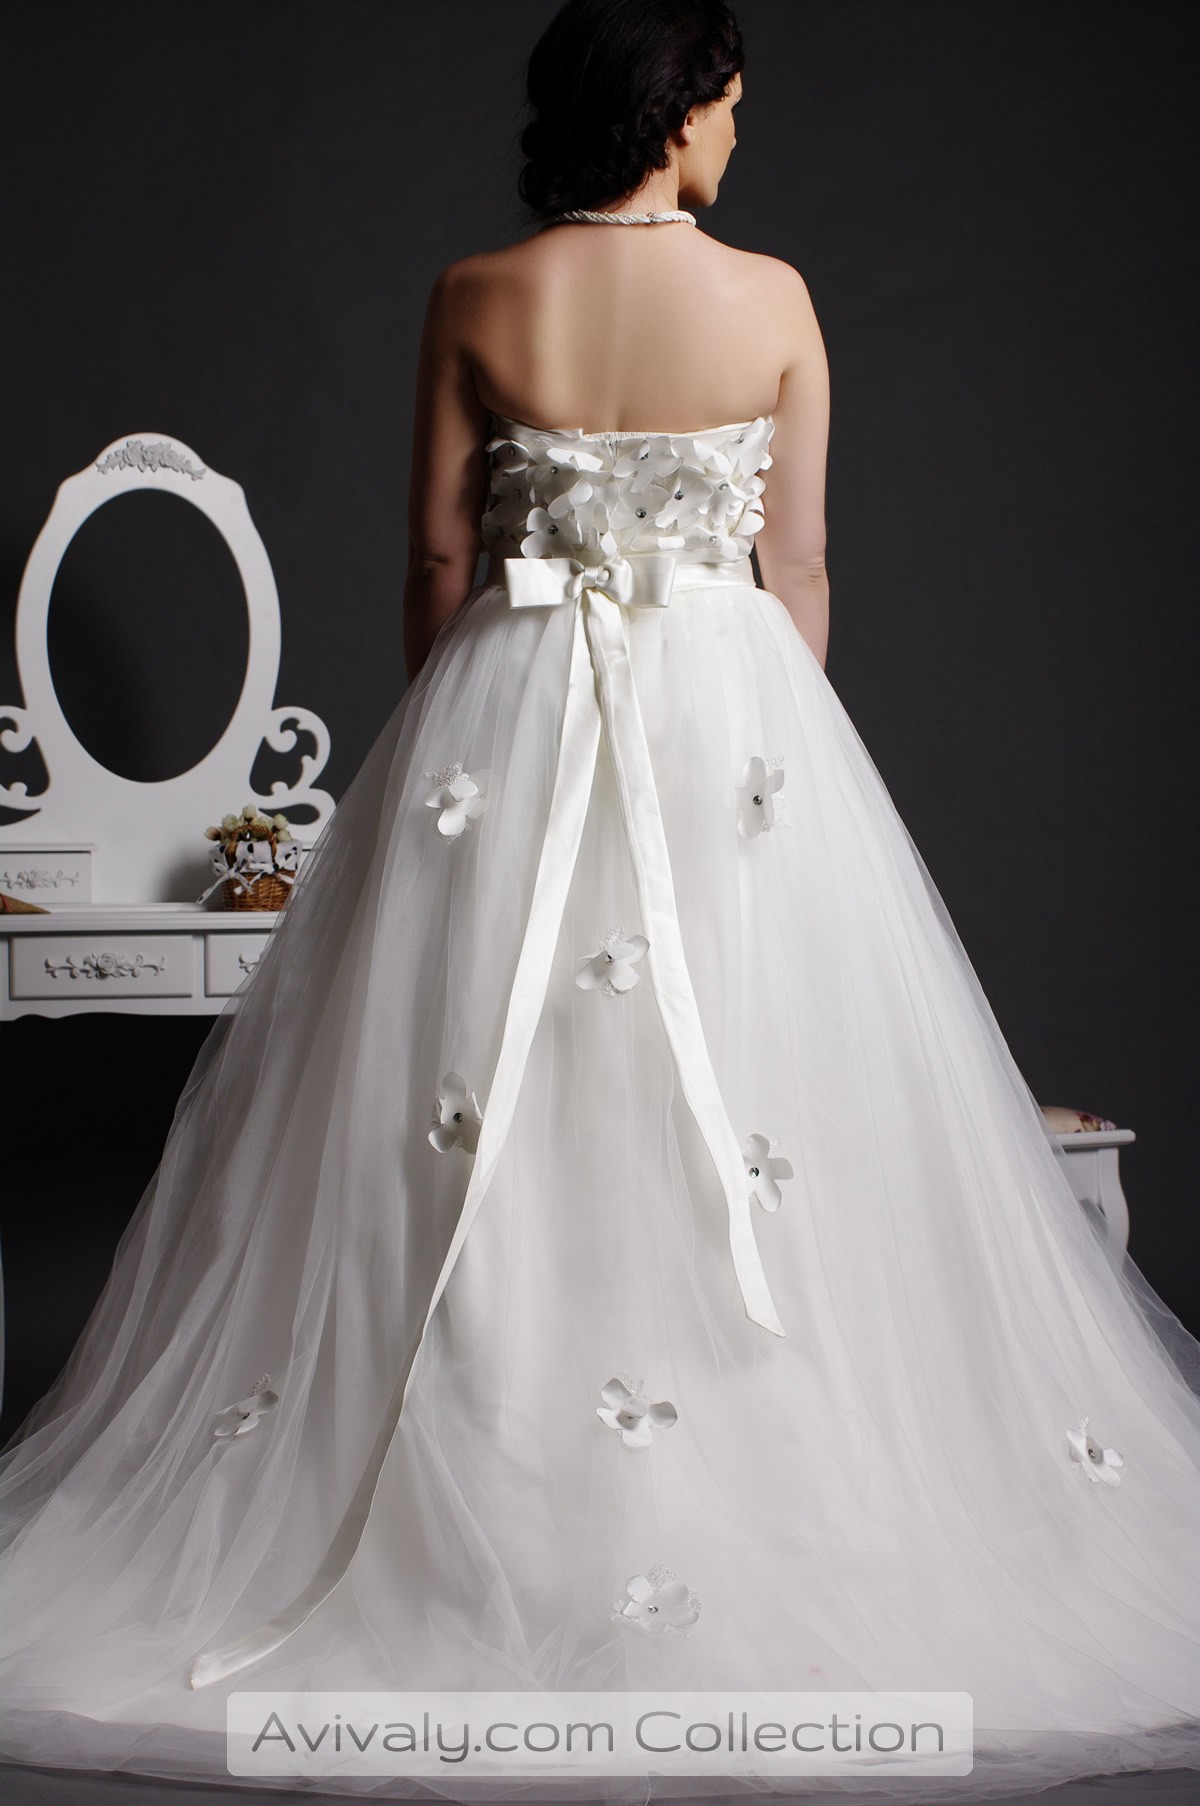 Petal - Backless, Sash Tied a Bowknot with Drapes, Flowers Sattered over Skirt